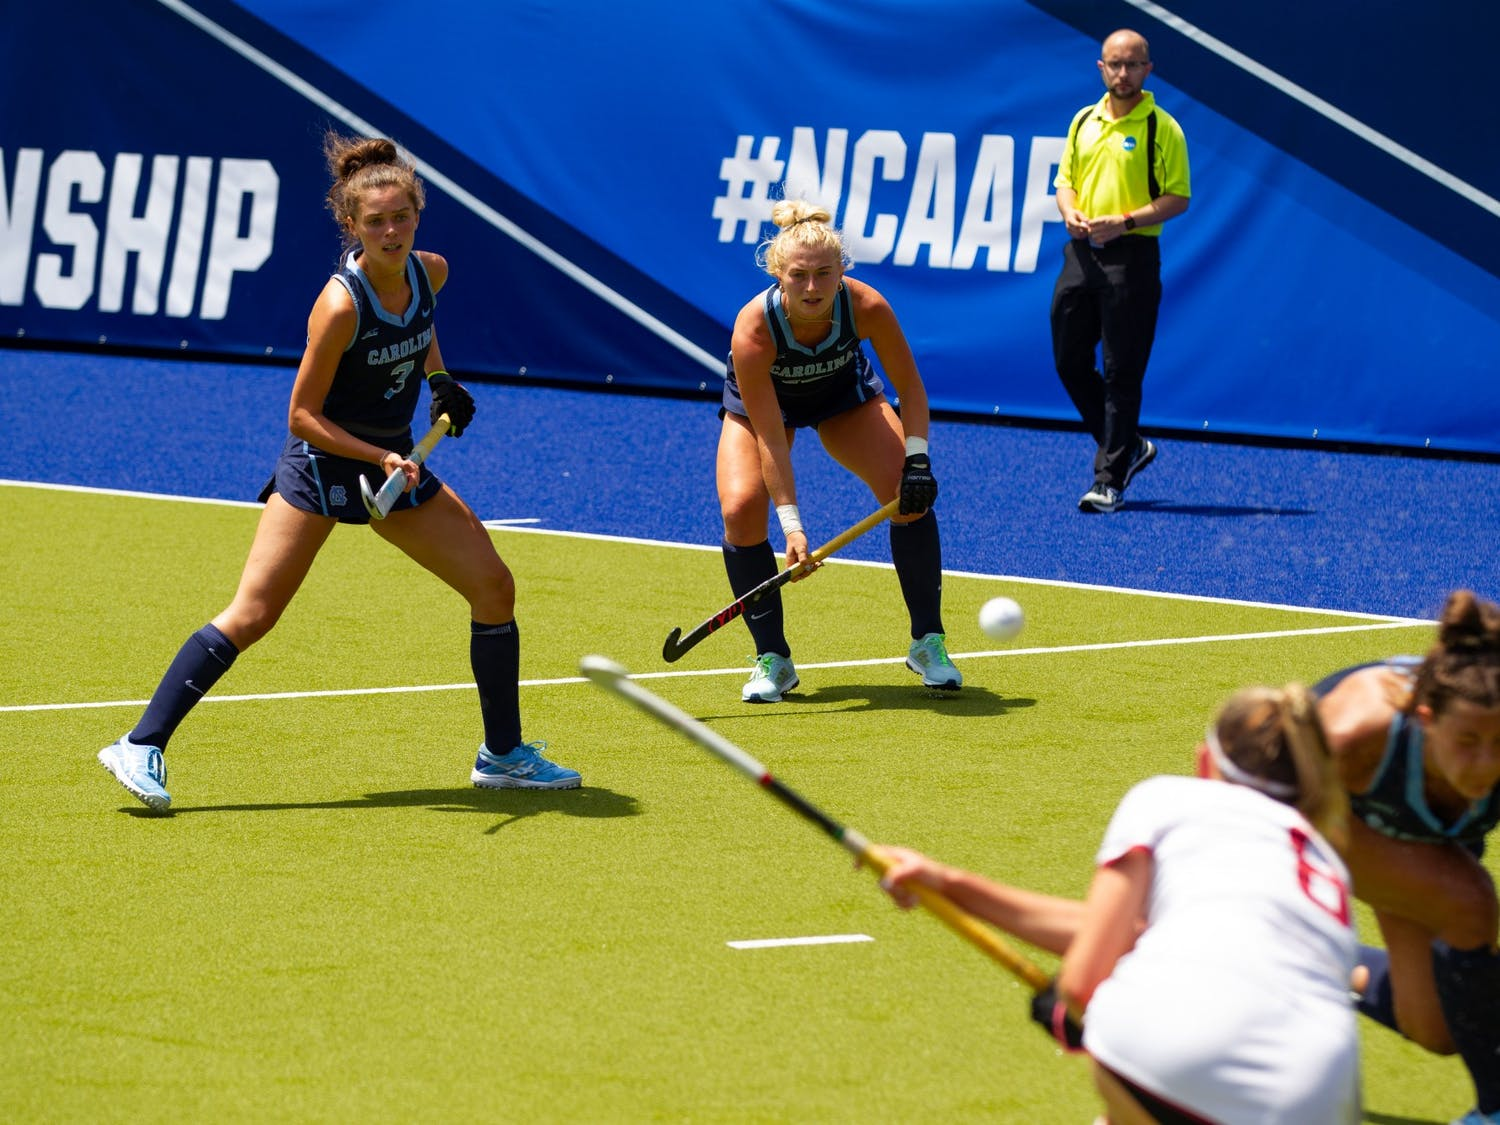 UNC redshirt Junior back Cassie Sumfest and Junior forward Hannah Griggs prepare to defend against a flick made by Stanford. No. 1 seed Carolina FIeld Hockey defeated the Cardinals in a 2-0 victory, advancing them to the next round of the NCAA D1 Field Hockey Championships.